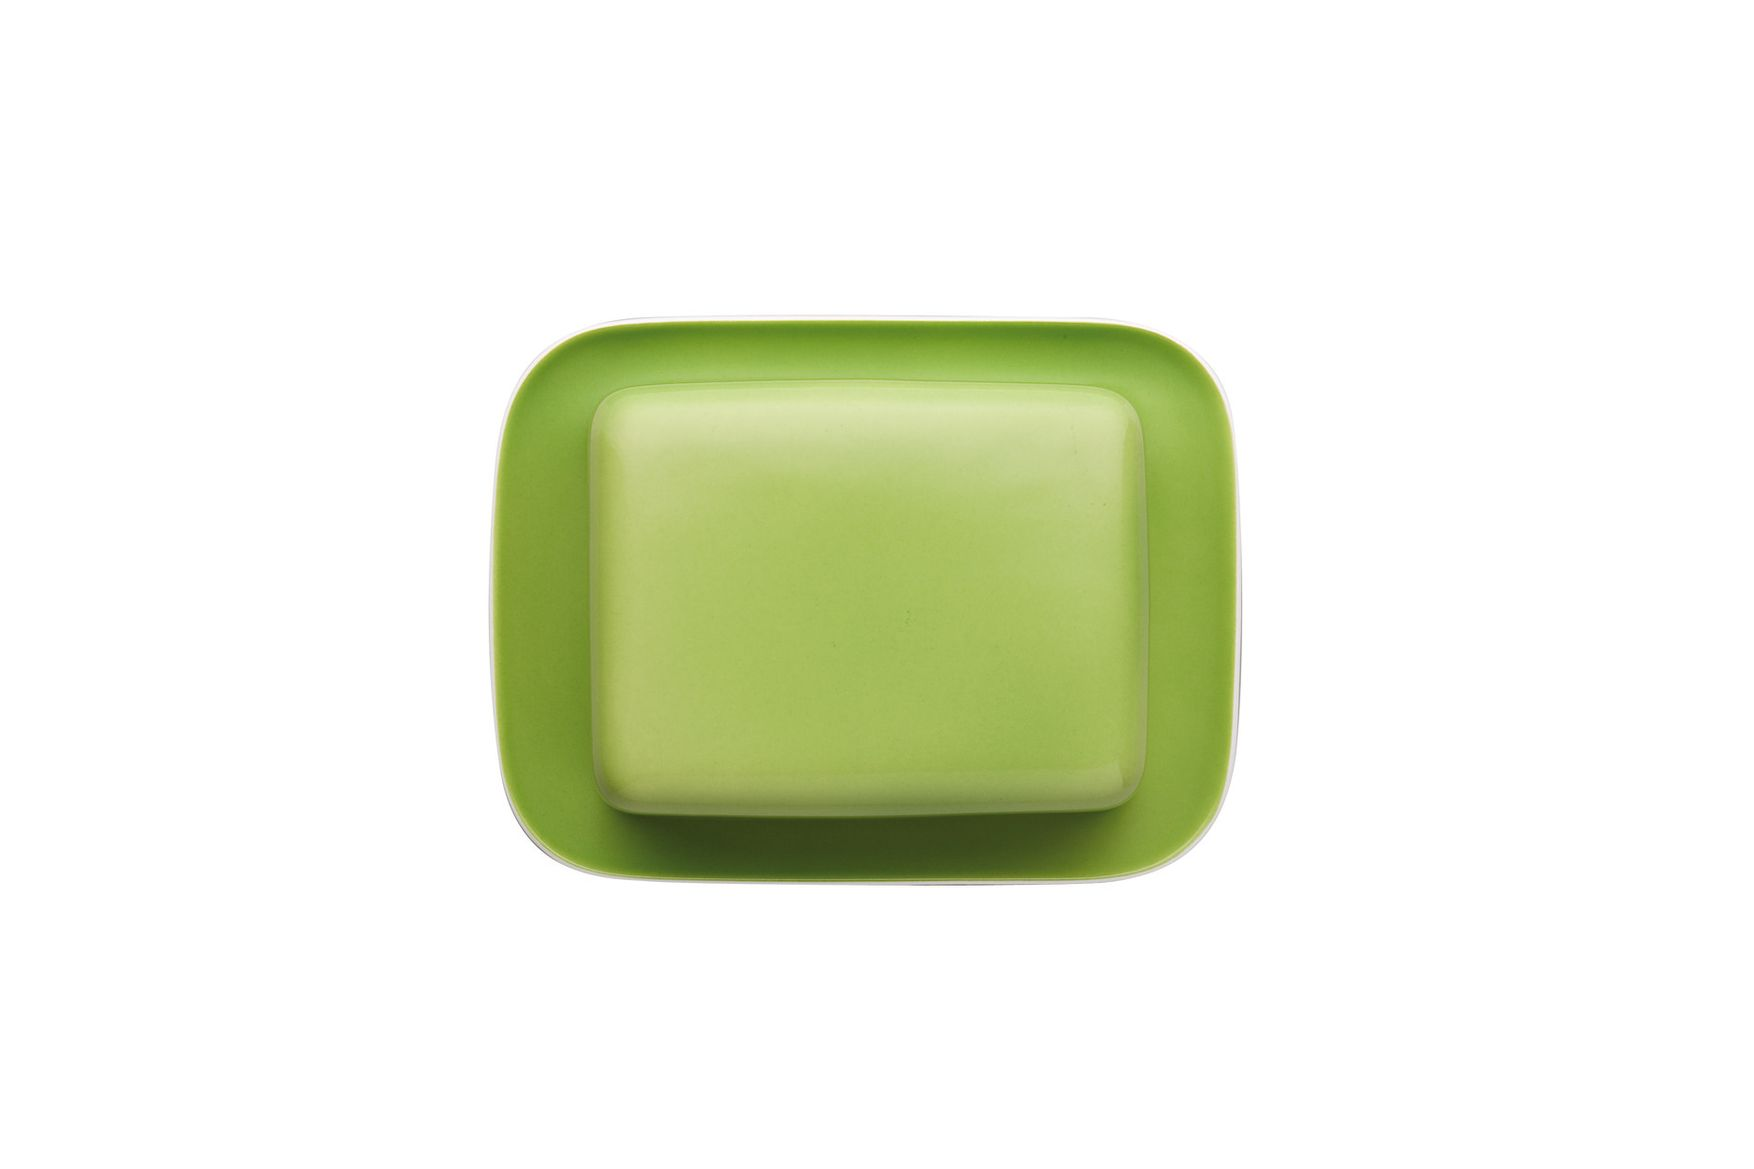 Thomas Sunny Day - Apple Green Butter Dish + Lid thumb 2